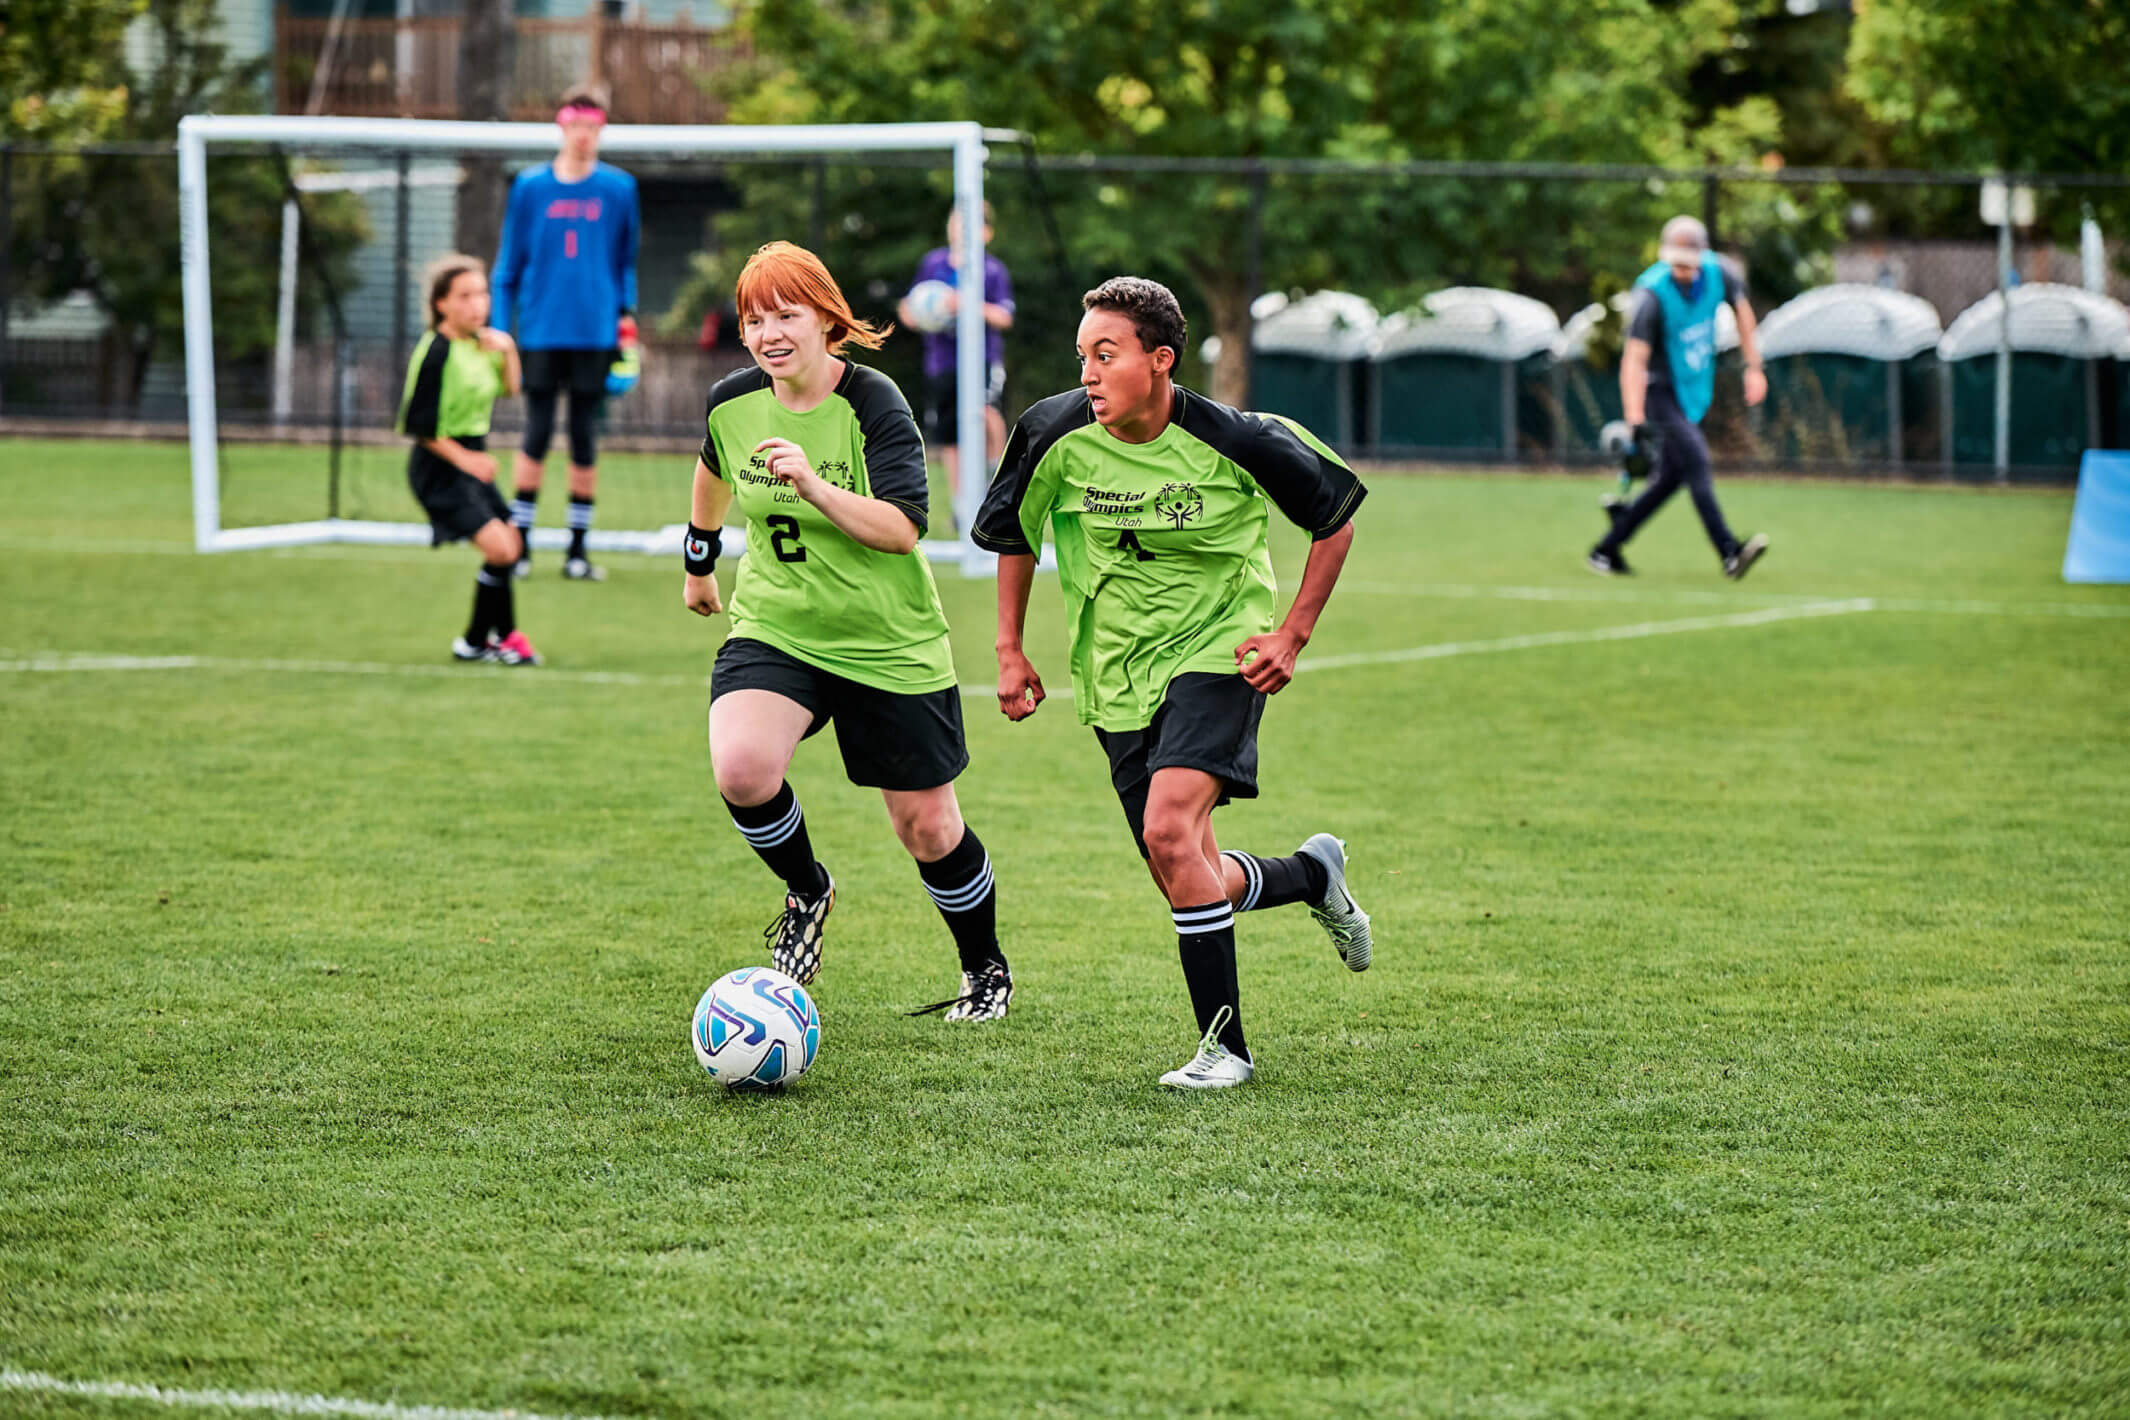 Two soccer players working together to dribble the ball down the field.